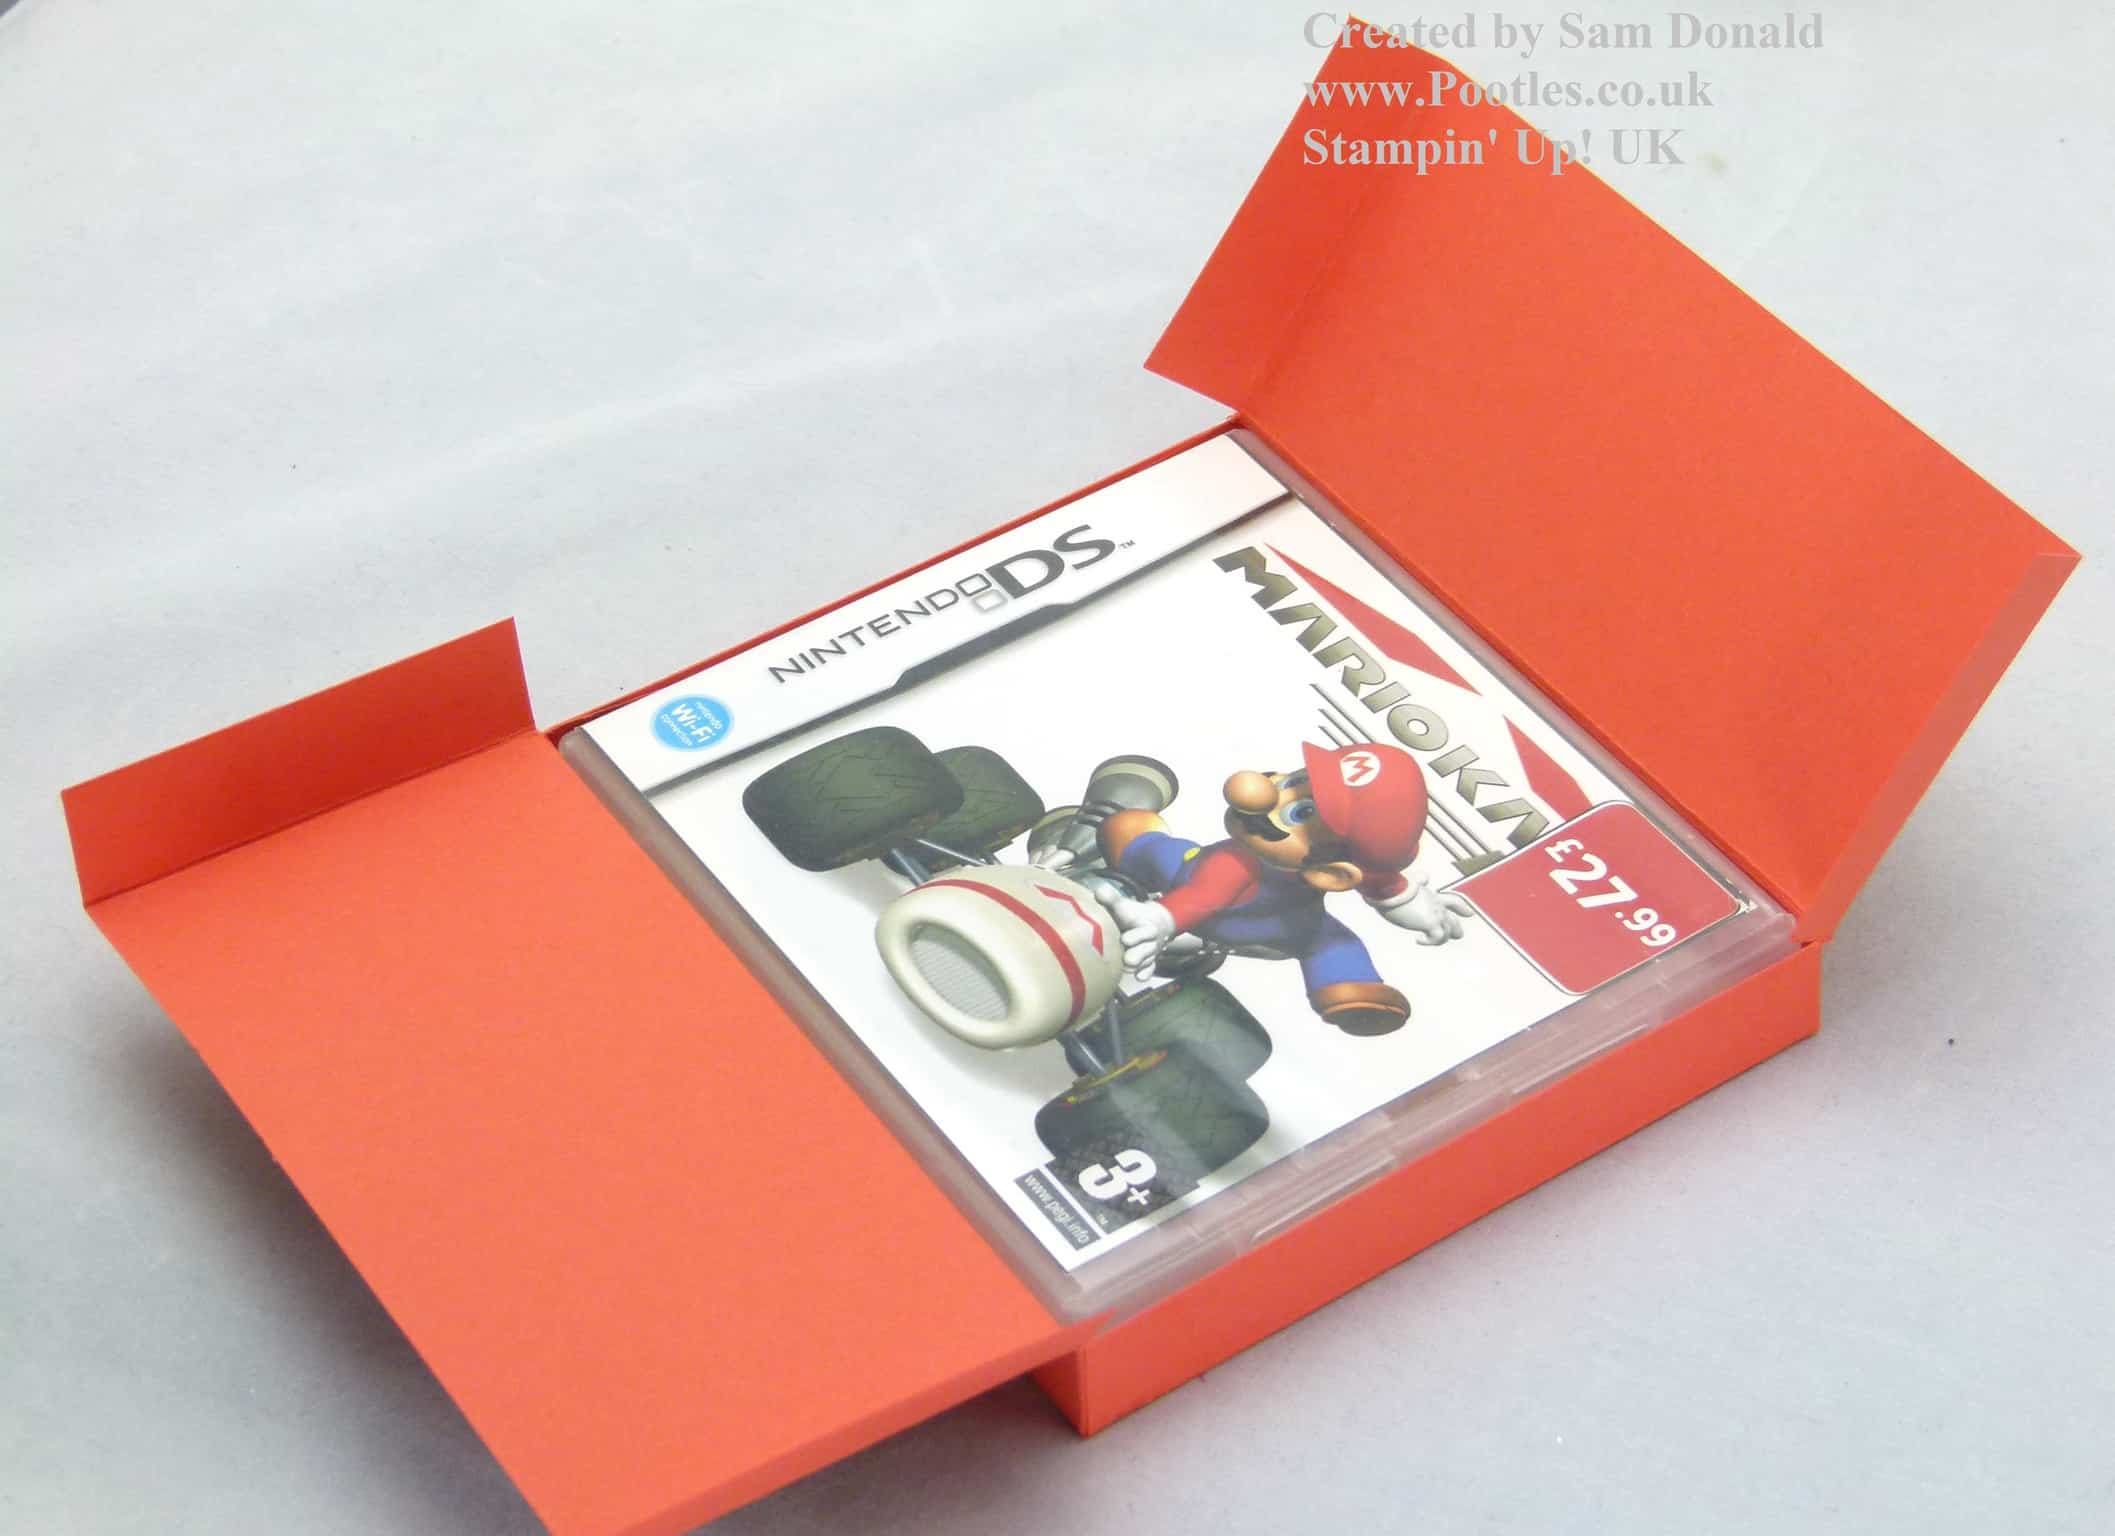 Stampin' Up! UK Nintendo DS Game Holder Tutorial VIDEO